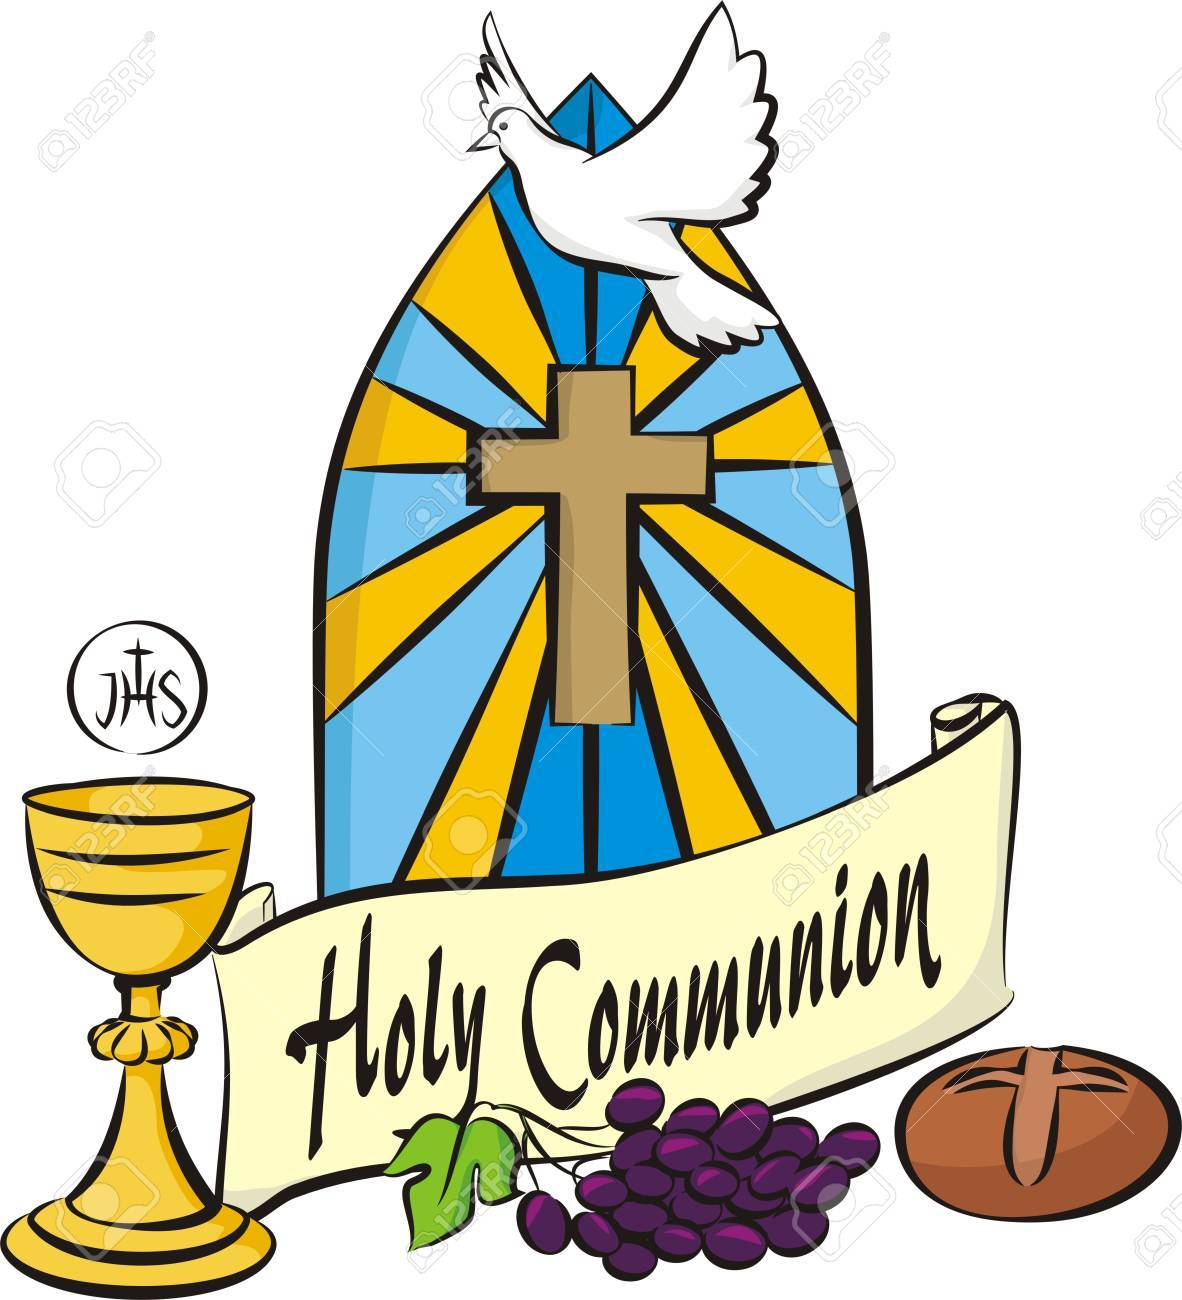 holy communion vector items royalty free cliparts vectors and rh 123rf com holy communion clip art church holy communion clip art images